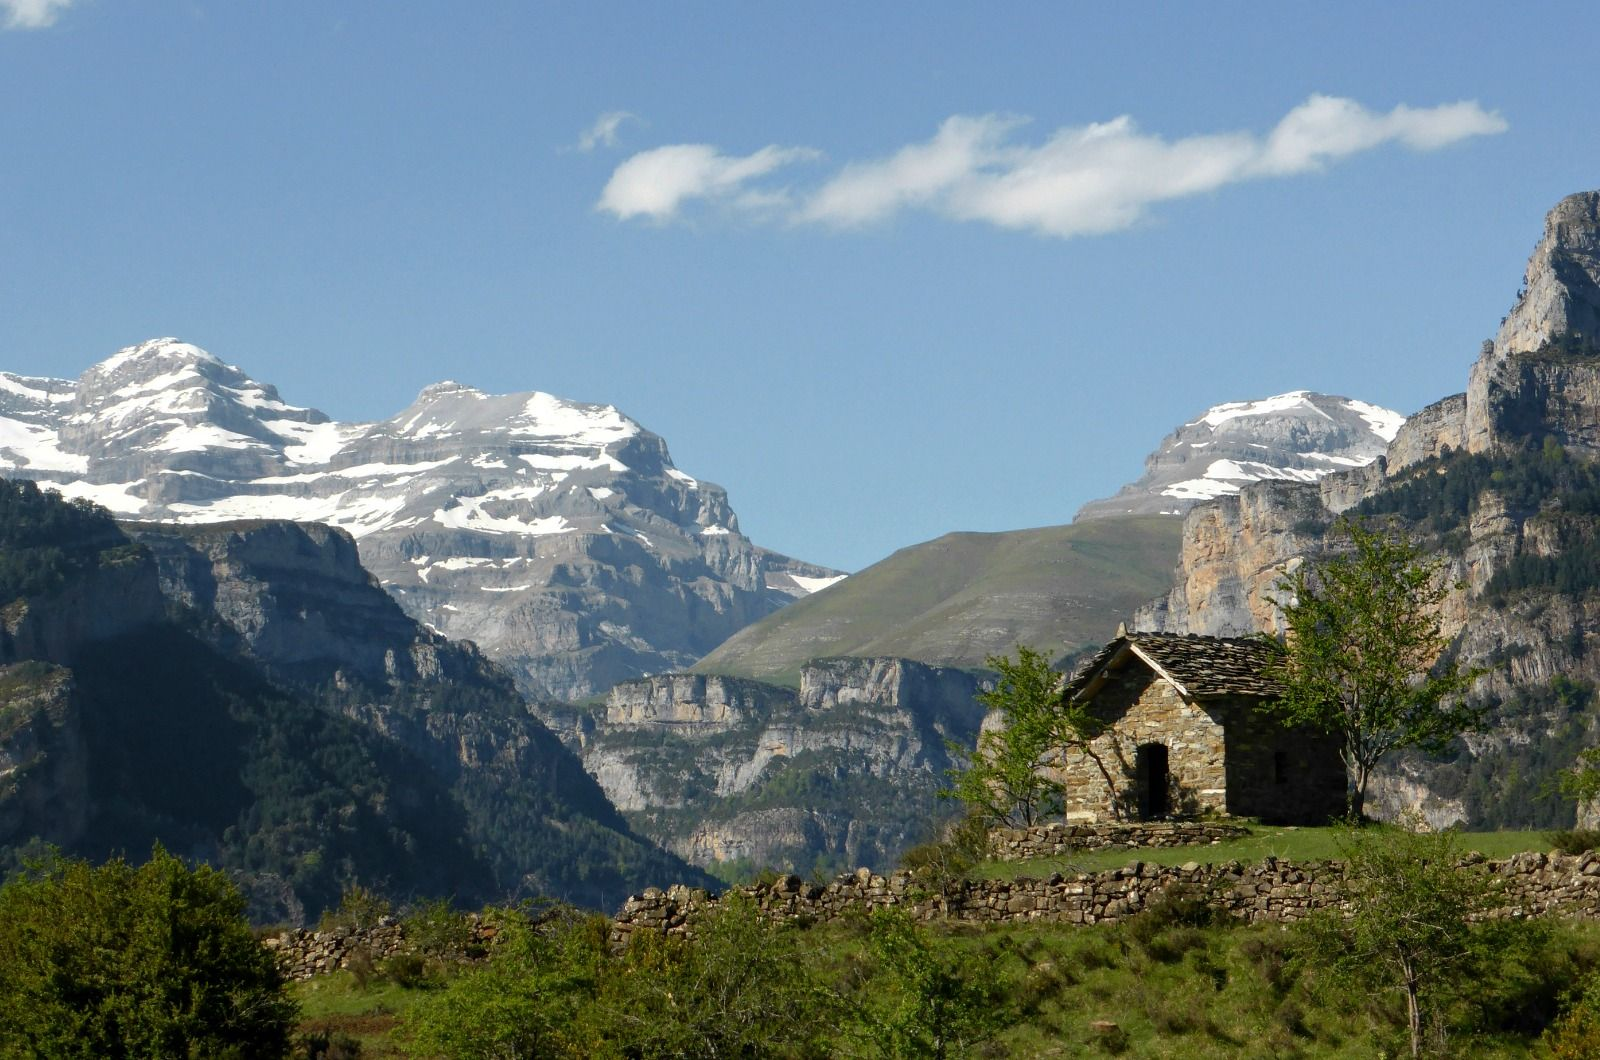 A stone barn perched on agreen terrace high in the Pyrenees with Monte Perdido behind in the Ordesa National Park on Aragon Active Self Guided Walking Holiday Spain